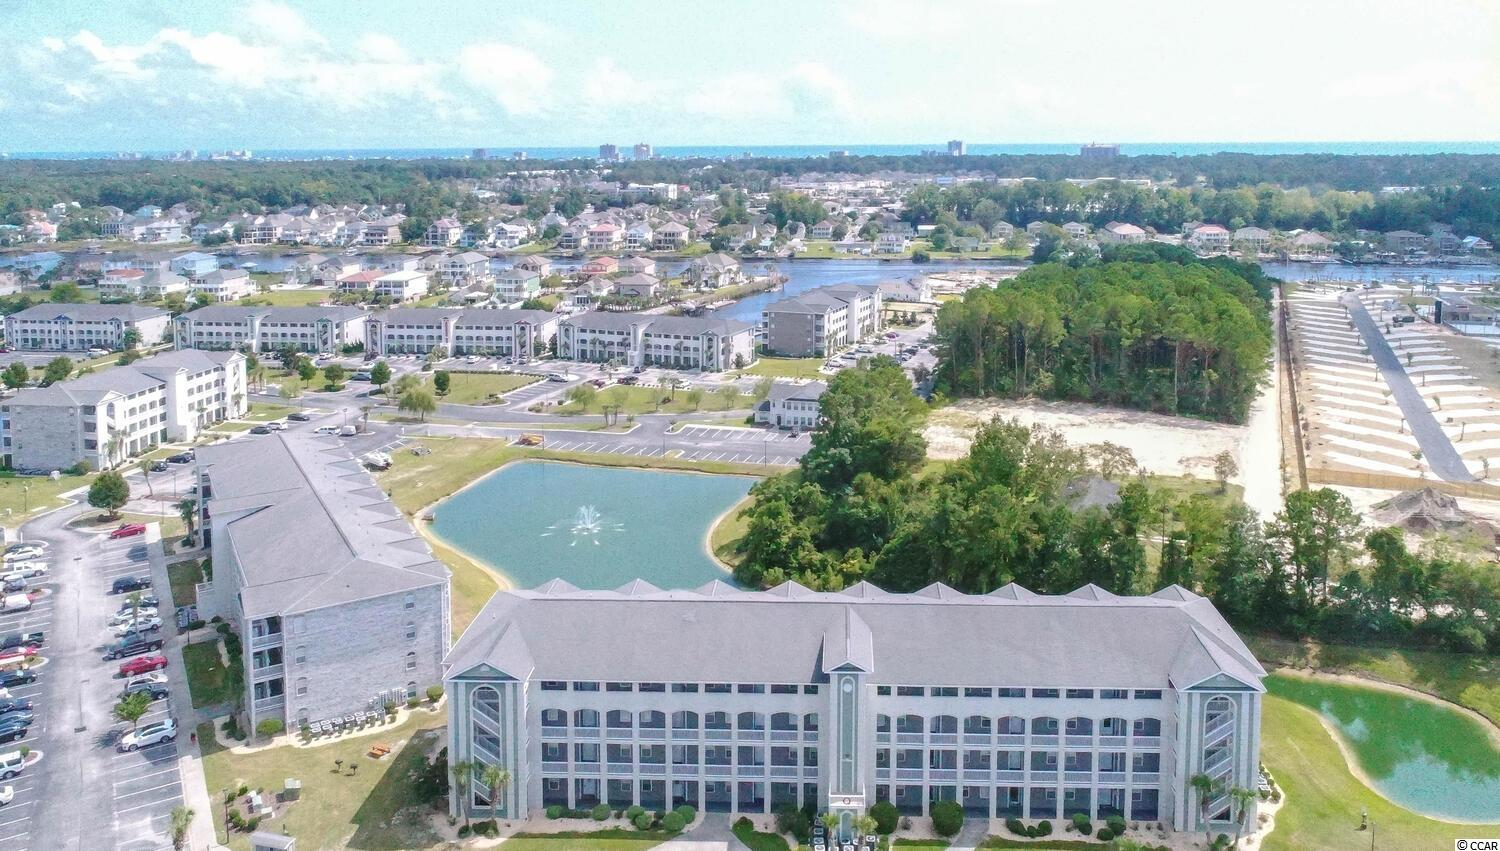 This is a beautifully appointed 3BR 2 BA condo in the Carolina Yacht Landing subdivision.  This is a gated community with roaming security and camera monitoring for the owners safety and security.  This community has 2 pools a clubhouse with weight room, and both community day docks and docks available for annual rental for residents only.  The community also has parking areas for both boats and trailers, making this a true mariners dream.  This condo has matching stainless steel appliances and all appliances convey including the washer and dryer.   The lighting in the unit has been updated and the flooring in the unit is vinyl plank flooring in the entry, living space and kitchen.  The bedrooms are carpeted and in need of TLC.  The living space is dramatic and lives large with a large bay window in the living area bringing the outside in.  Closets galore exist in this condo with two closets in the Master bedroom, one of which is walk in. The master bedroom is large and easily will accommodate a king size bed and large furniture, and has direct access from the master to the screened porch.   The master bedroom suite has a shower in the large bathroom.  This is a must see condominium in a unique waterfront community in Little River South Carolina.  This community is a short drive to the beach and golf carts are allowed, for easy access to the beach and nearby shopping in North Myrtle Beach.  Carolina Yacht Landing is close to many dining and shopping areas and in the community famous for the Crab and Shrimp Fest yearly.  Privacy, the beach and boating all close by in this beautifully maintained community.